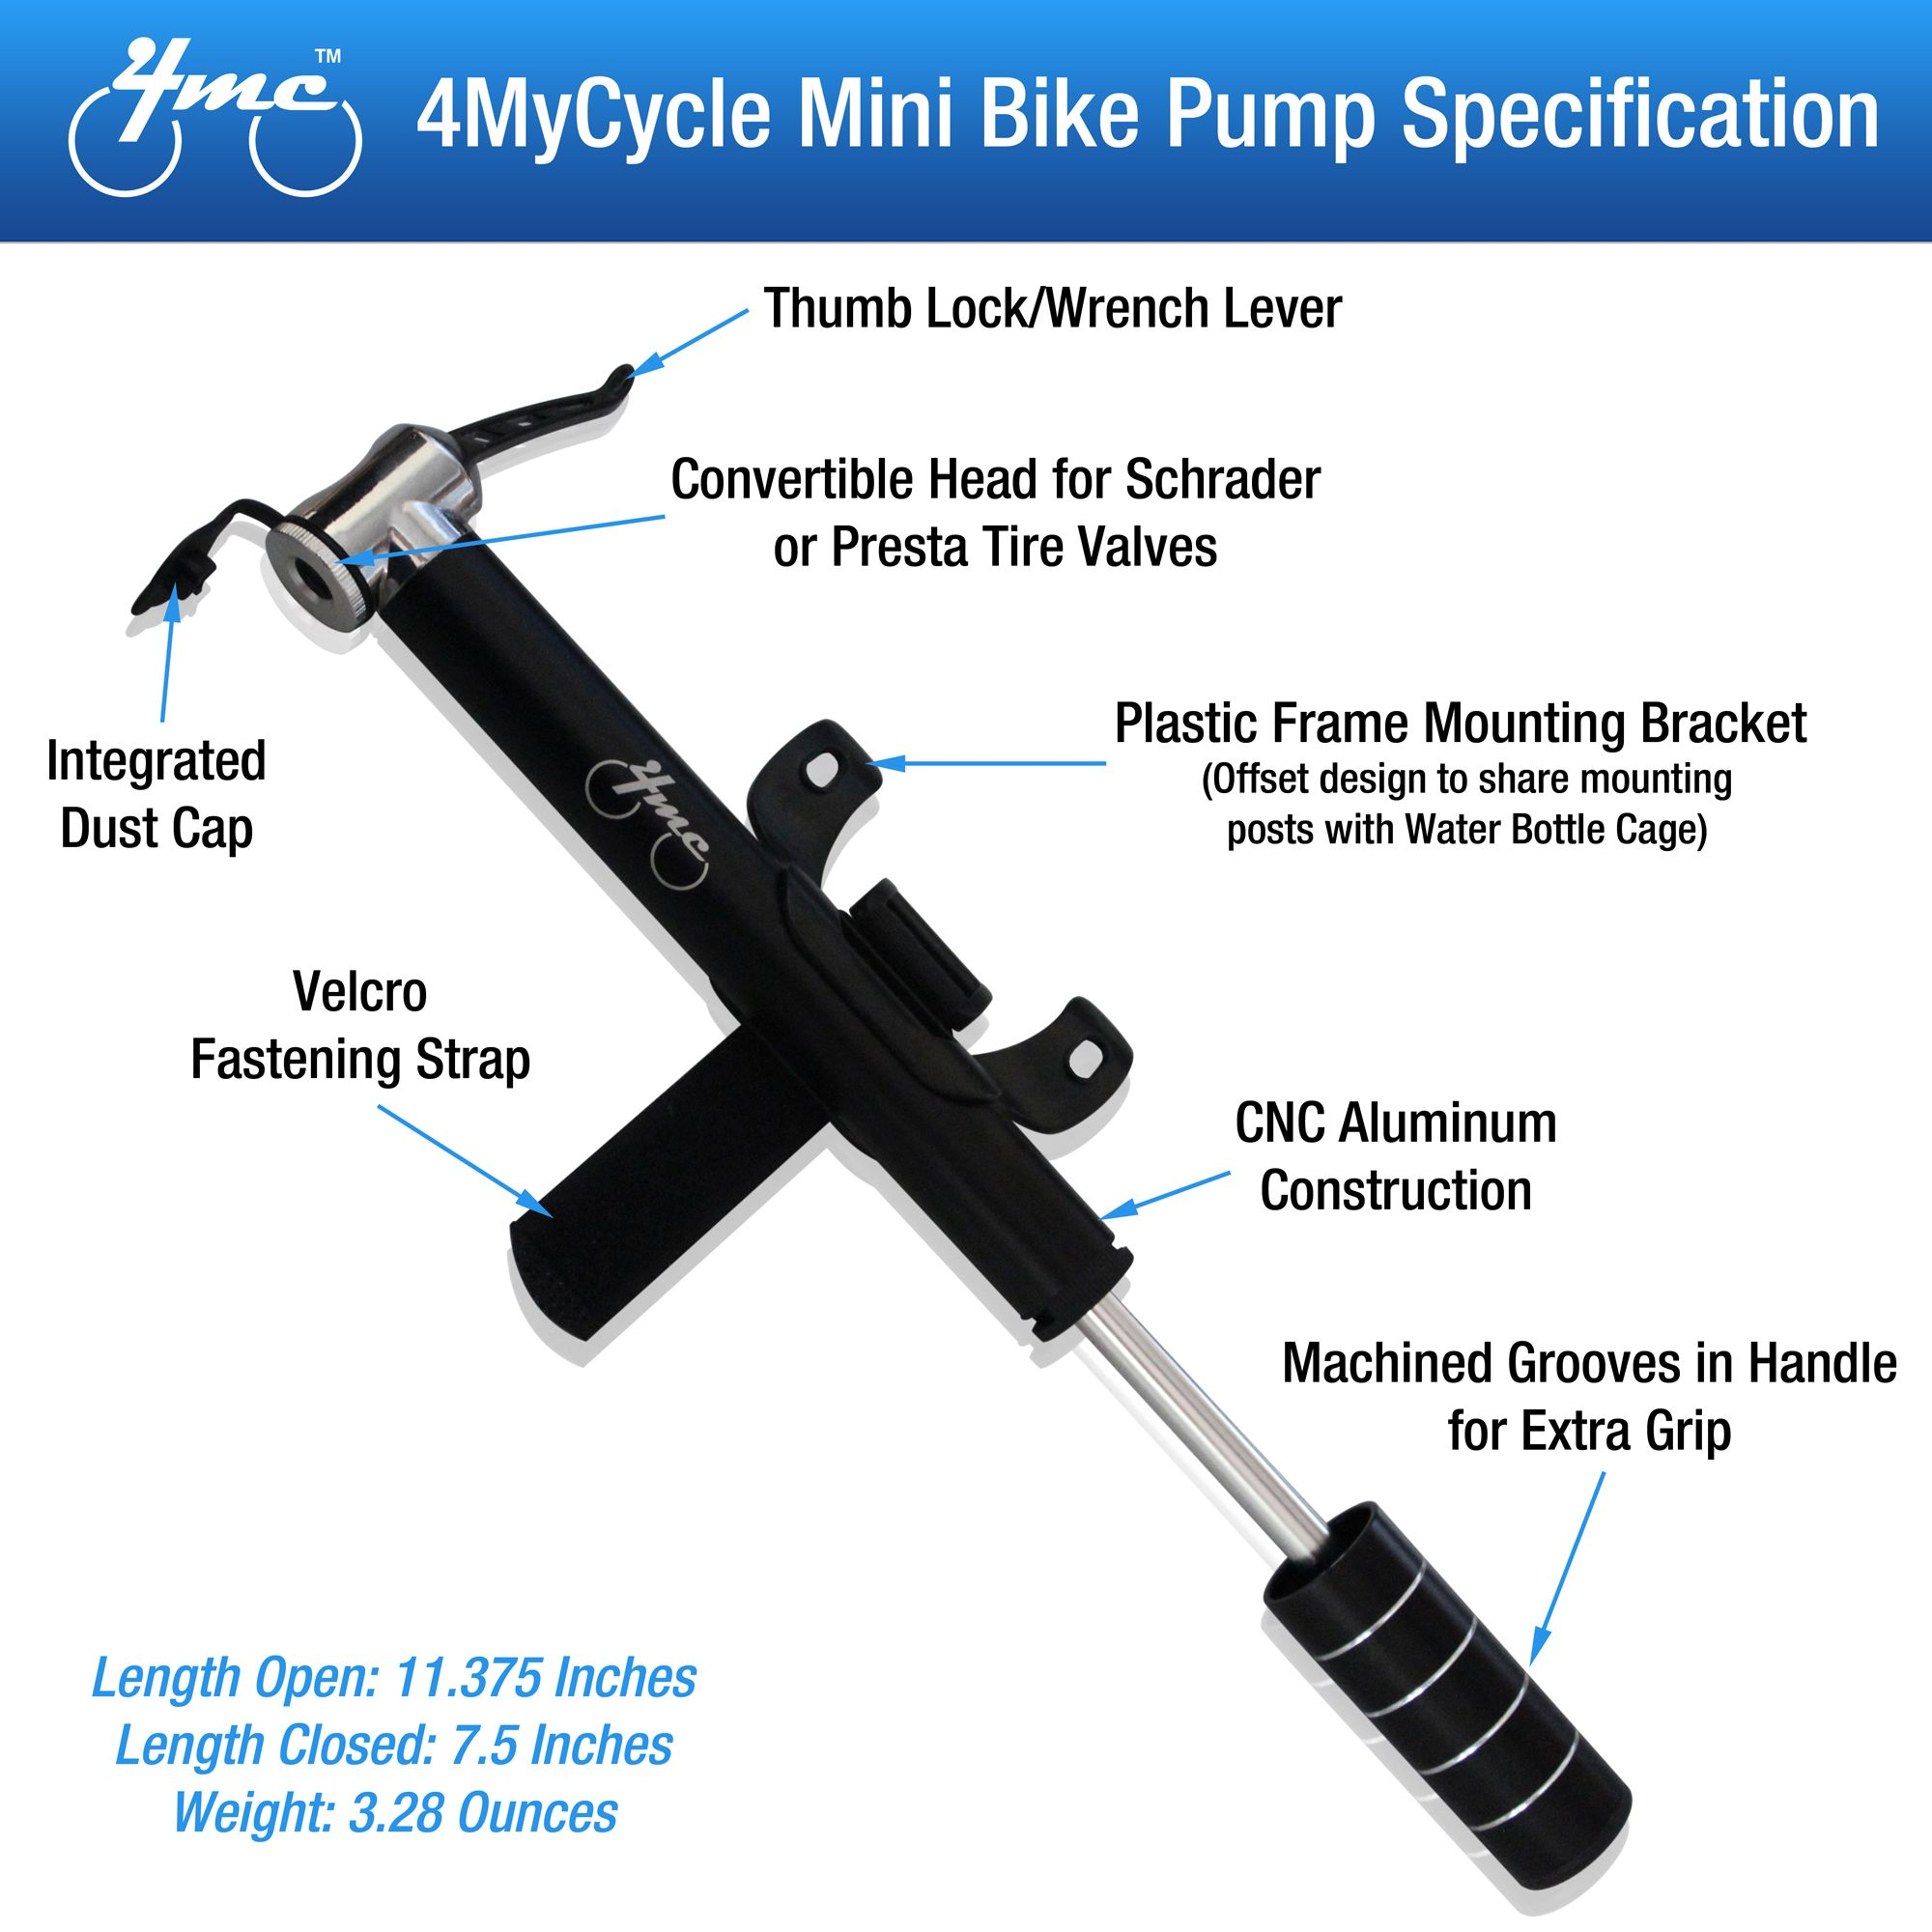 Mini Bike Pump From 4mycycle Deluxe Black Alloy Bike Pump